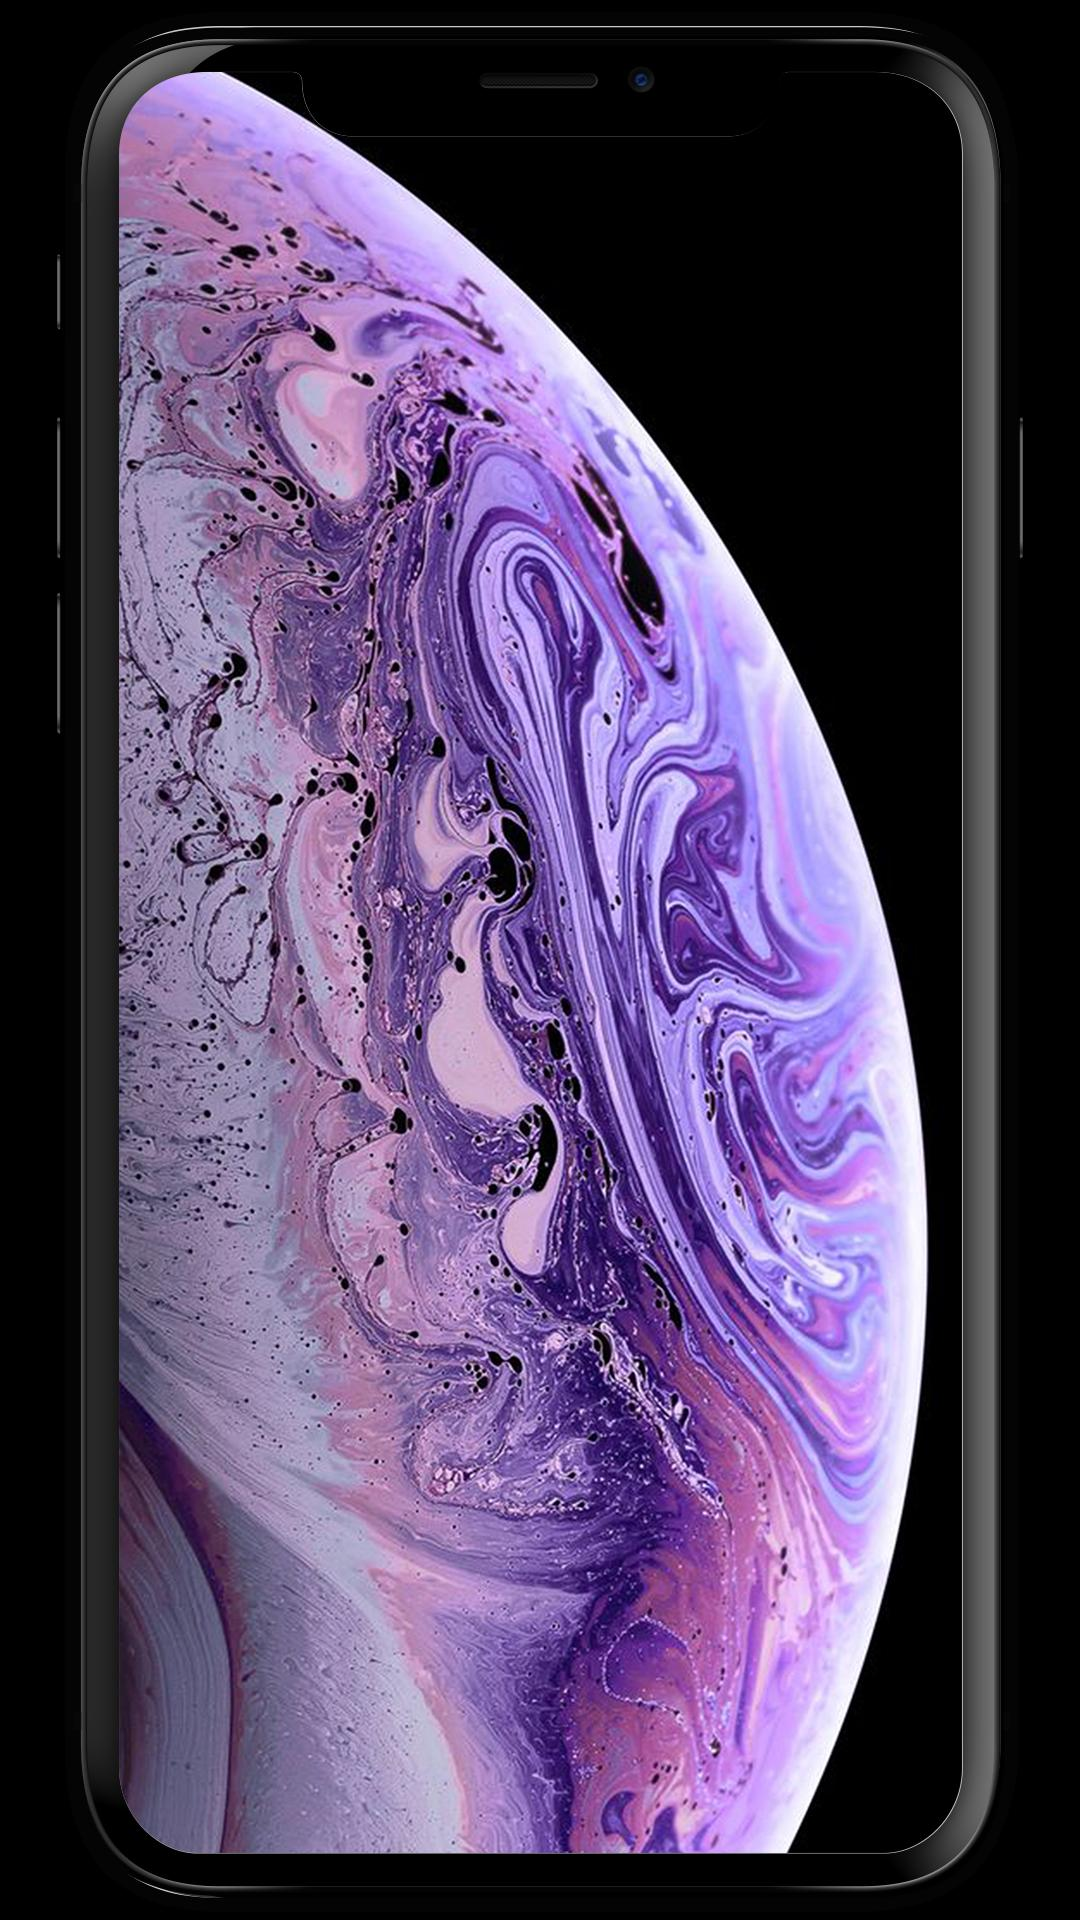 4k Hd Wallpapers For Iphone Xr Xs And X Max For Android Apk Download